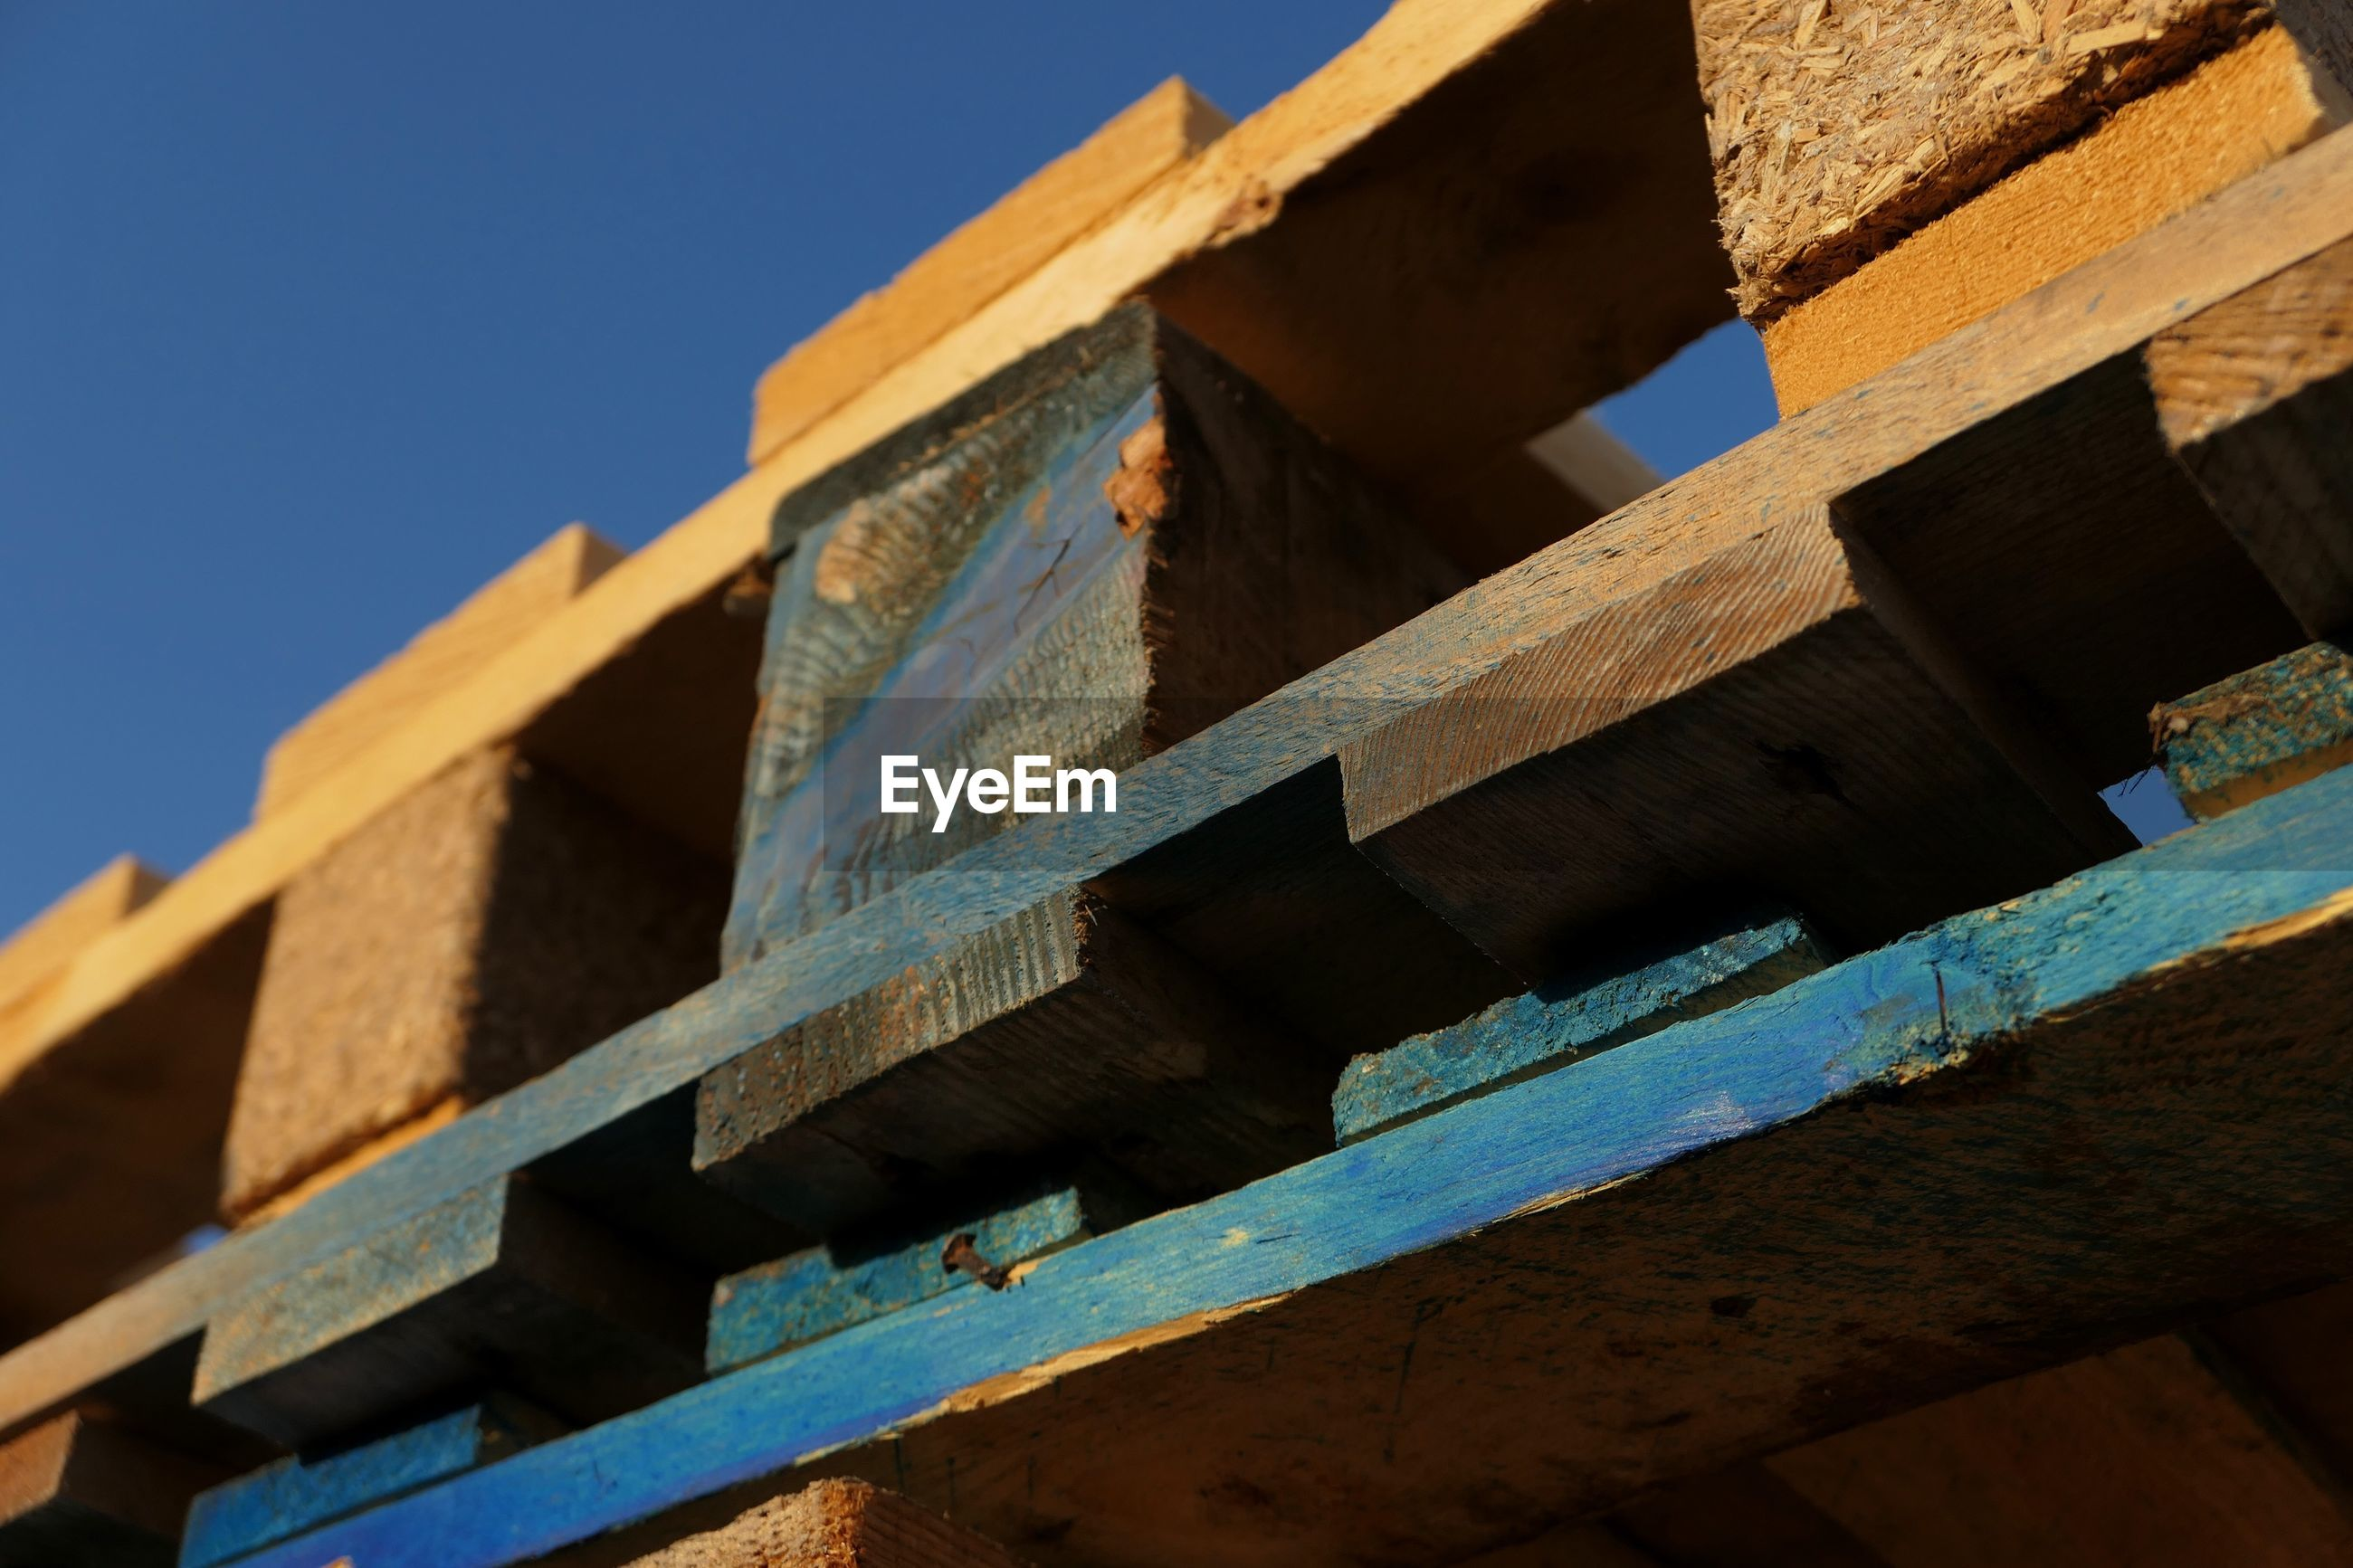 Low angle view of wooden pallets